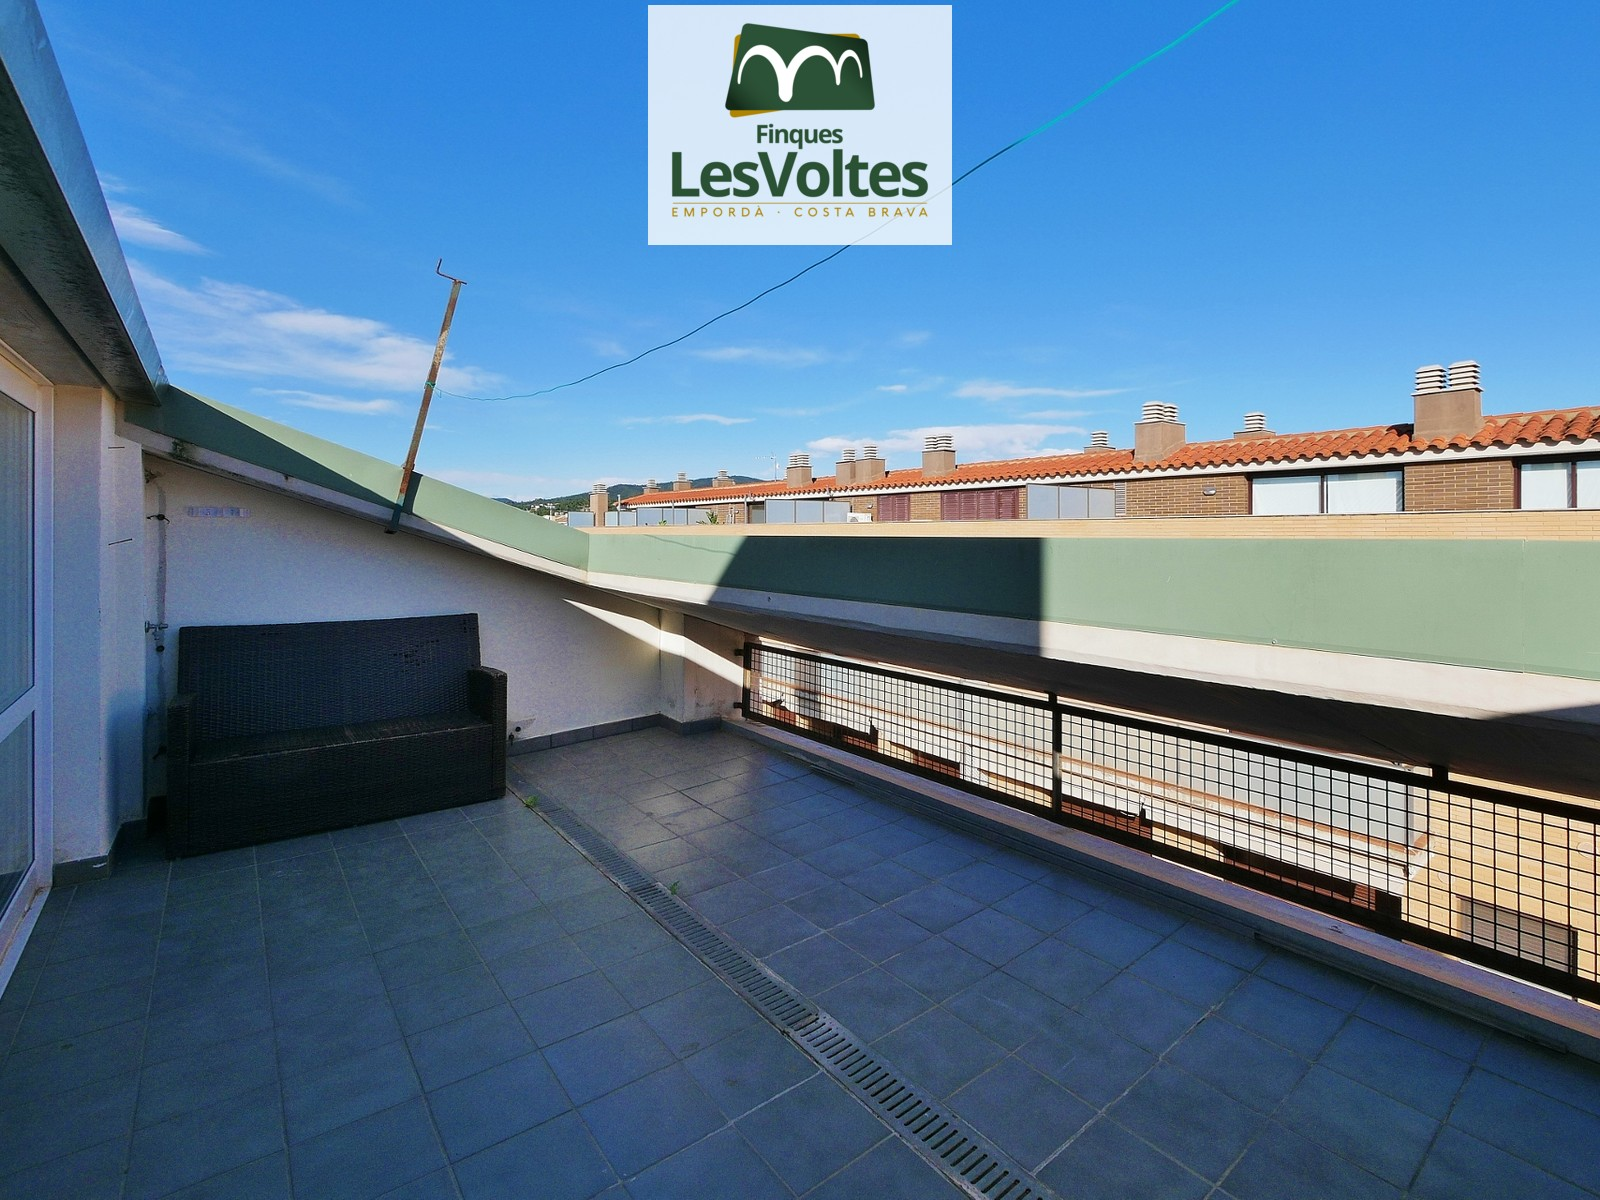 2-bedroom duplex penthouse with terrace for sale in an unbeatable location in Palamós.